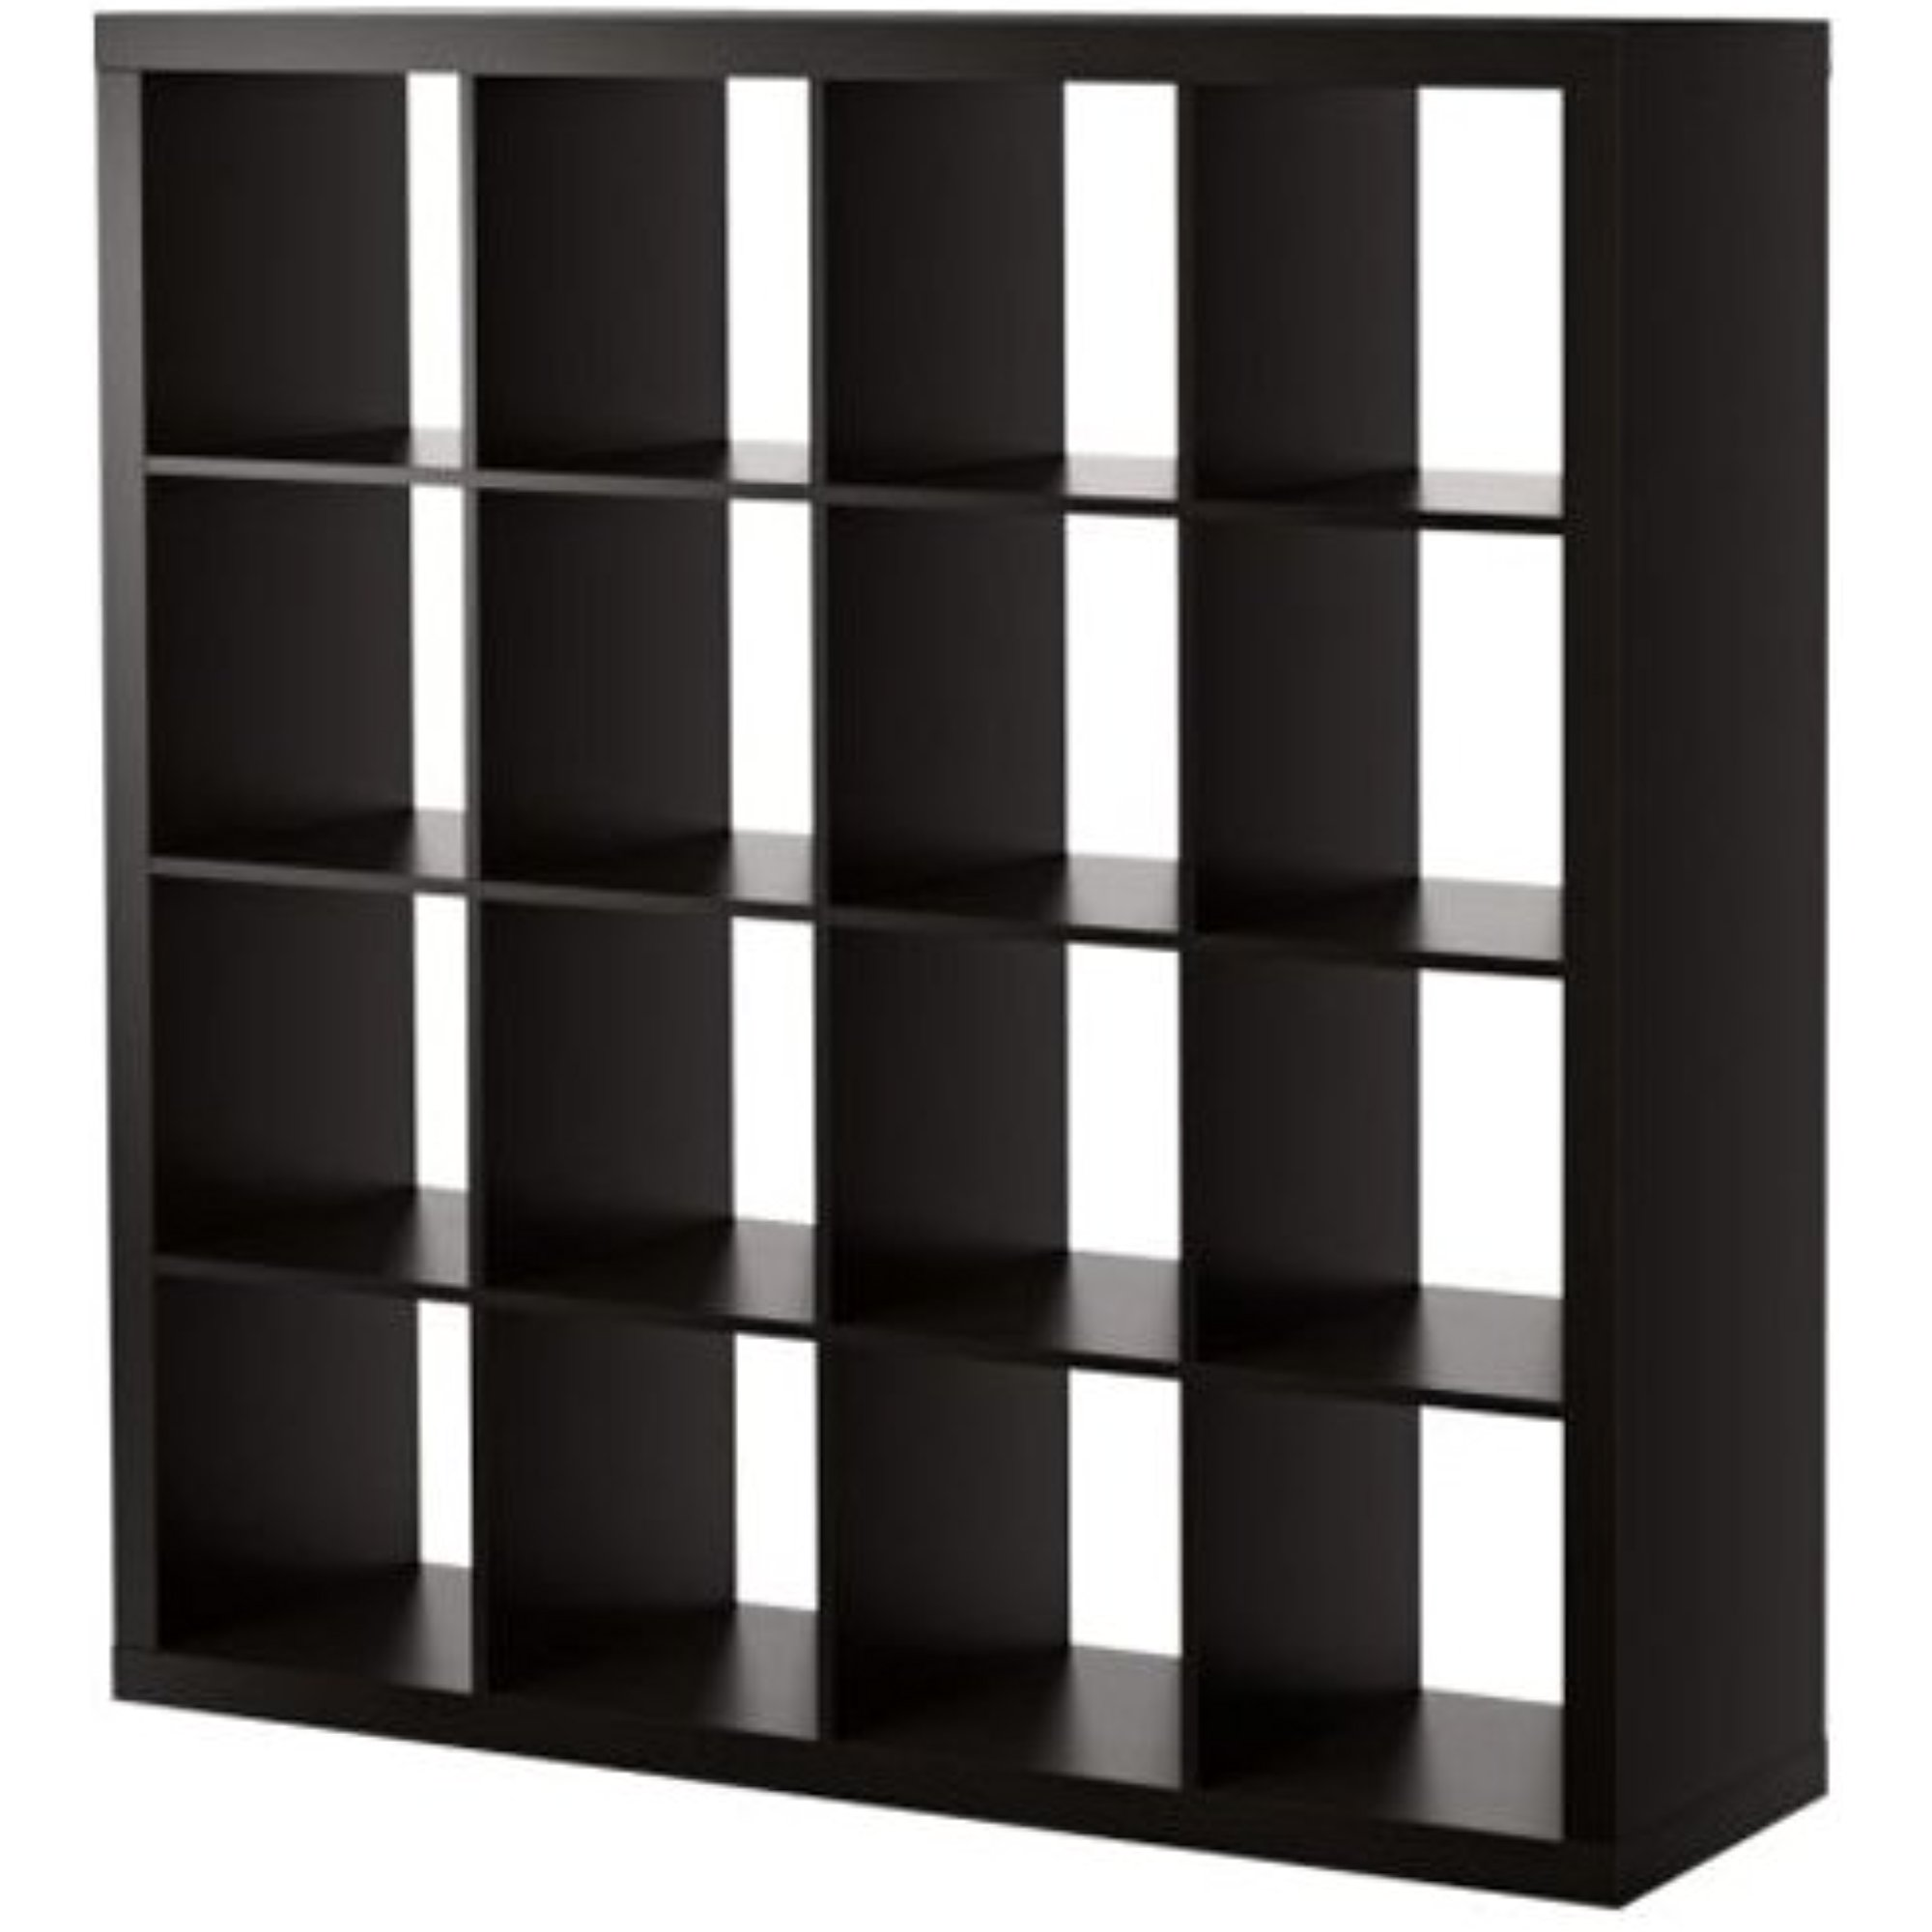 Ikea Kallax Ikea Kallax Bookcase Room Divider Cube Display 6210 23126 146